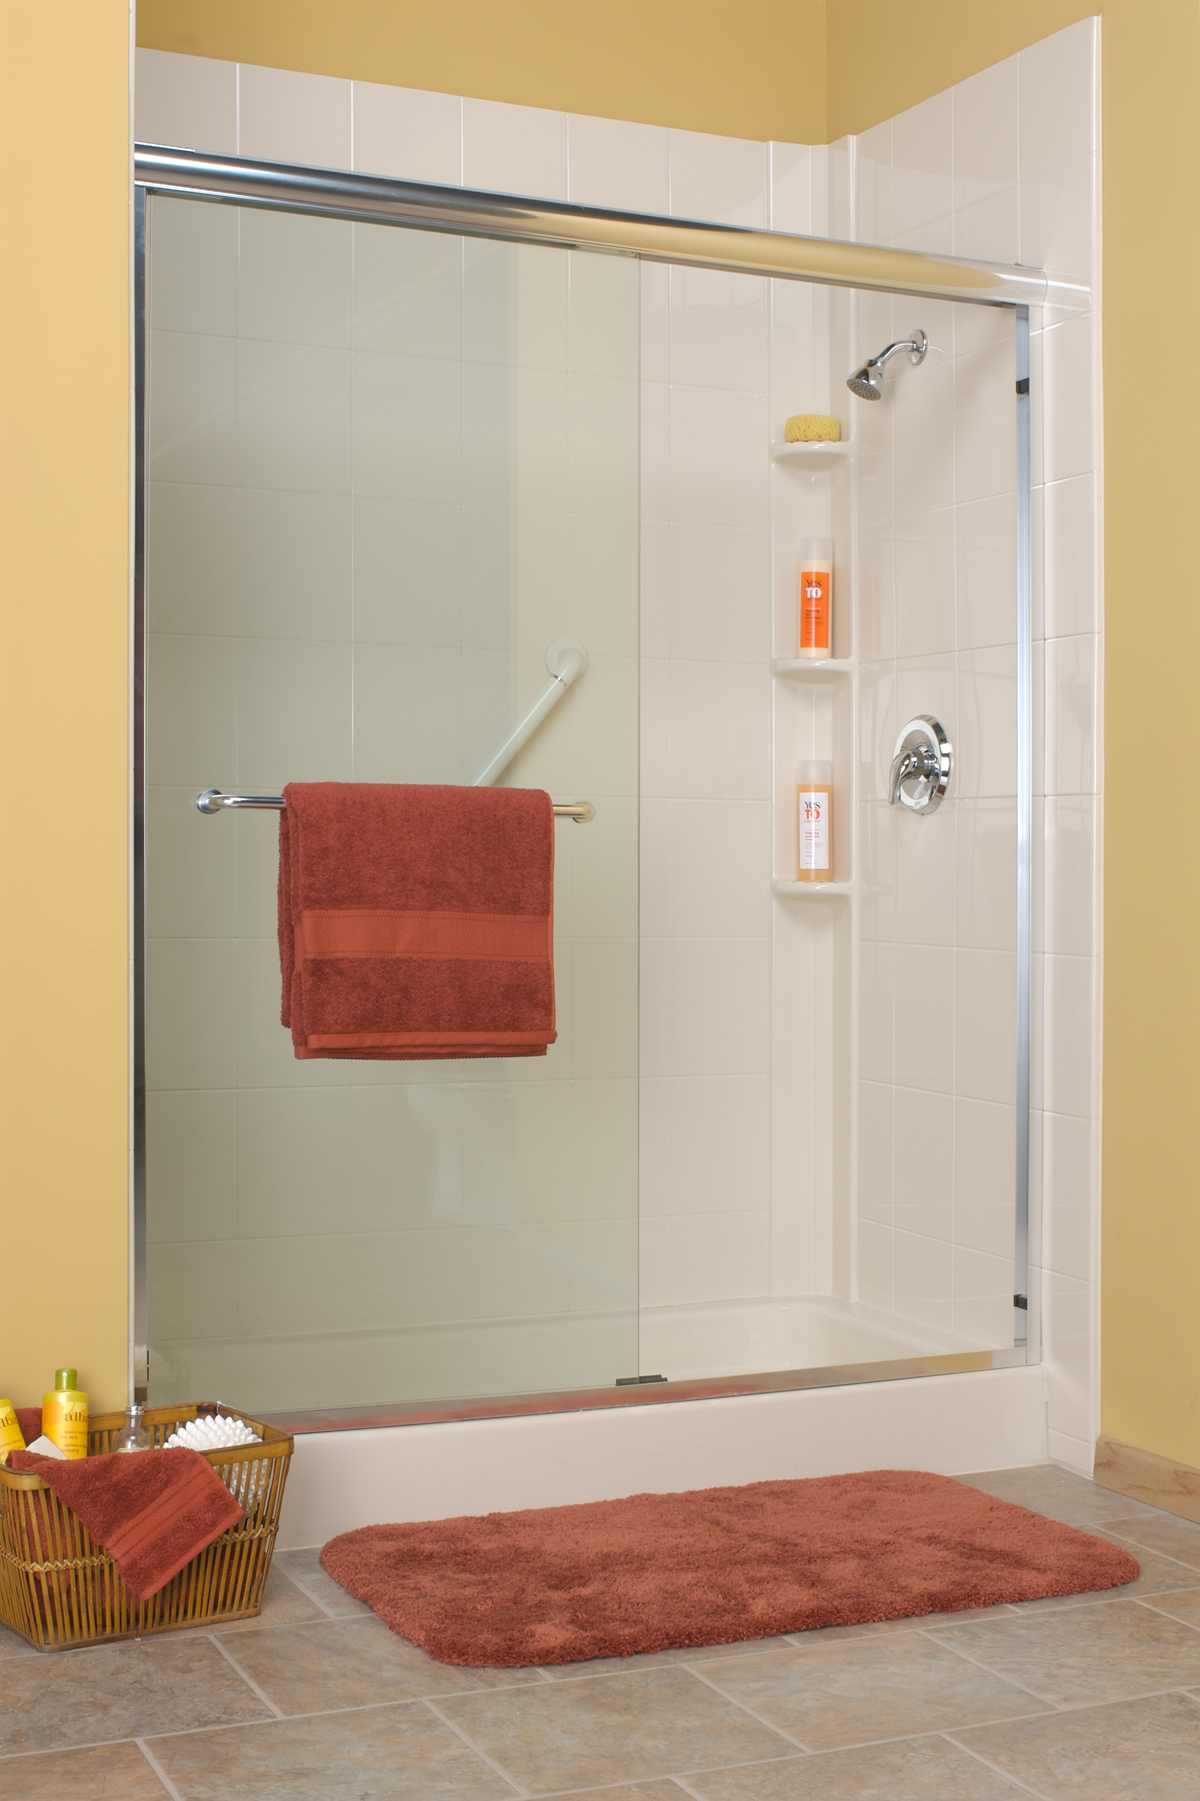 Replace Tub Shower San Antonio TX | Austin